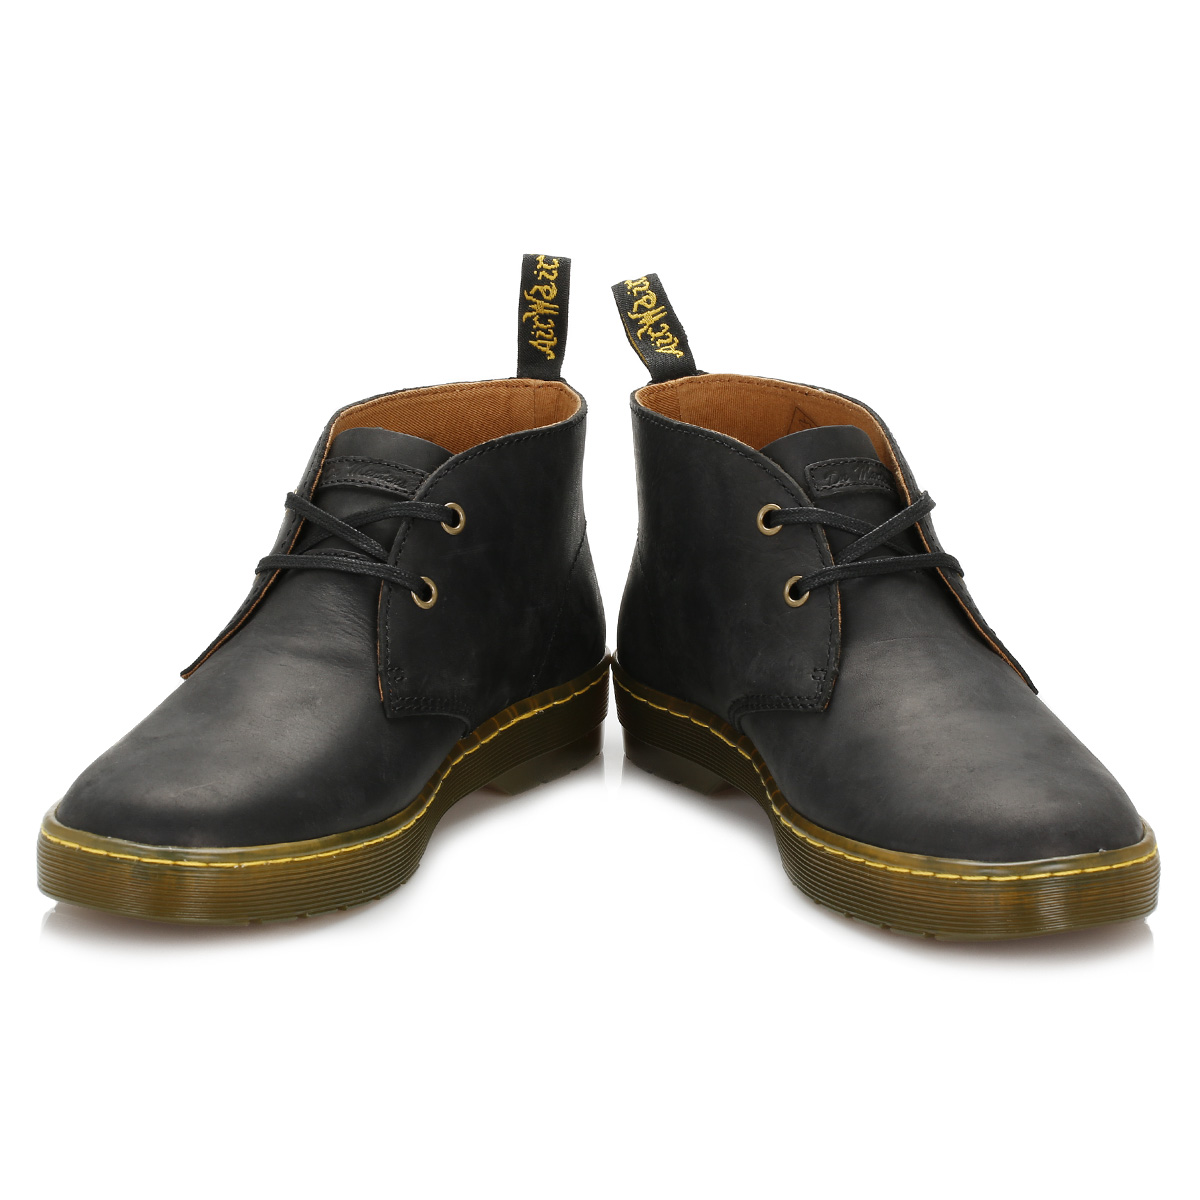 d28b19c260e Details about Dr. Martens Mens Black Cabrillo Desert Boots Leather Lace Up  Ankle Shoes